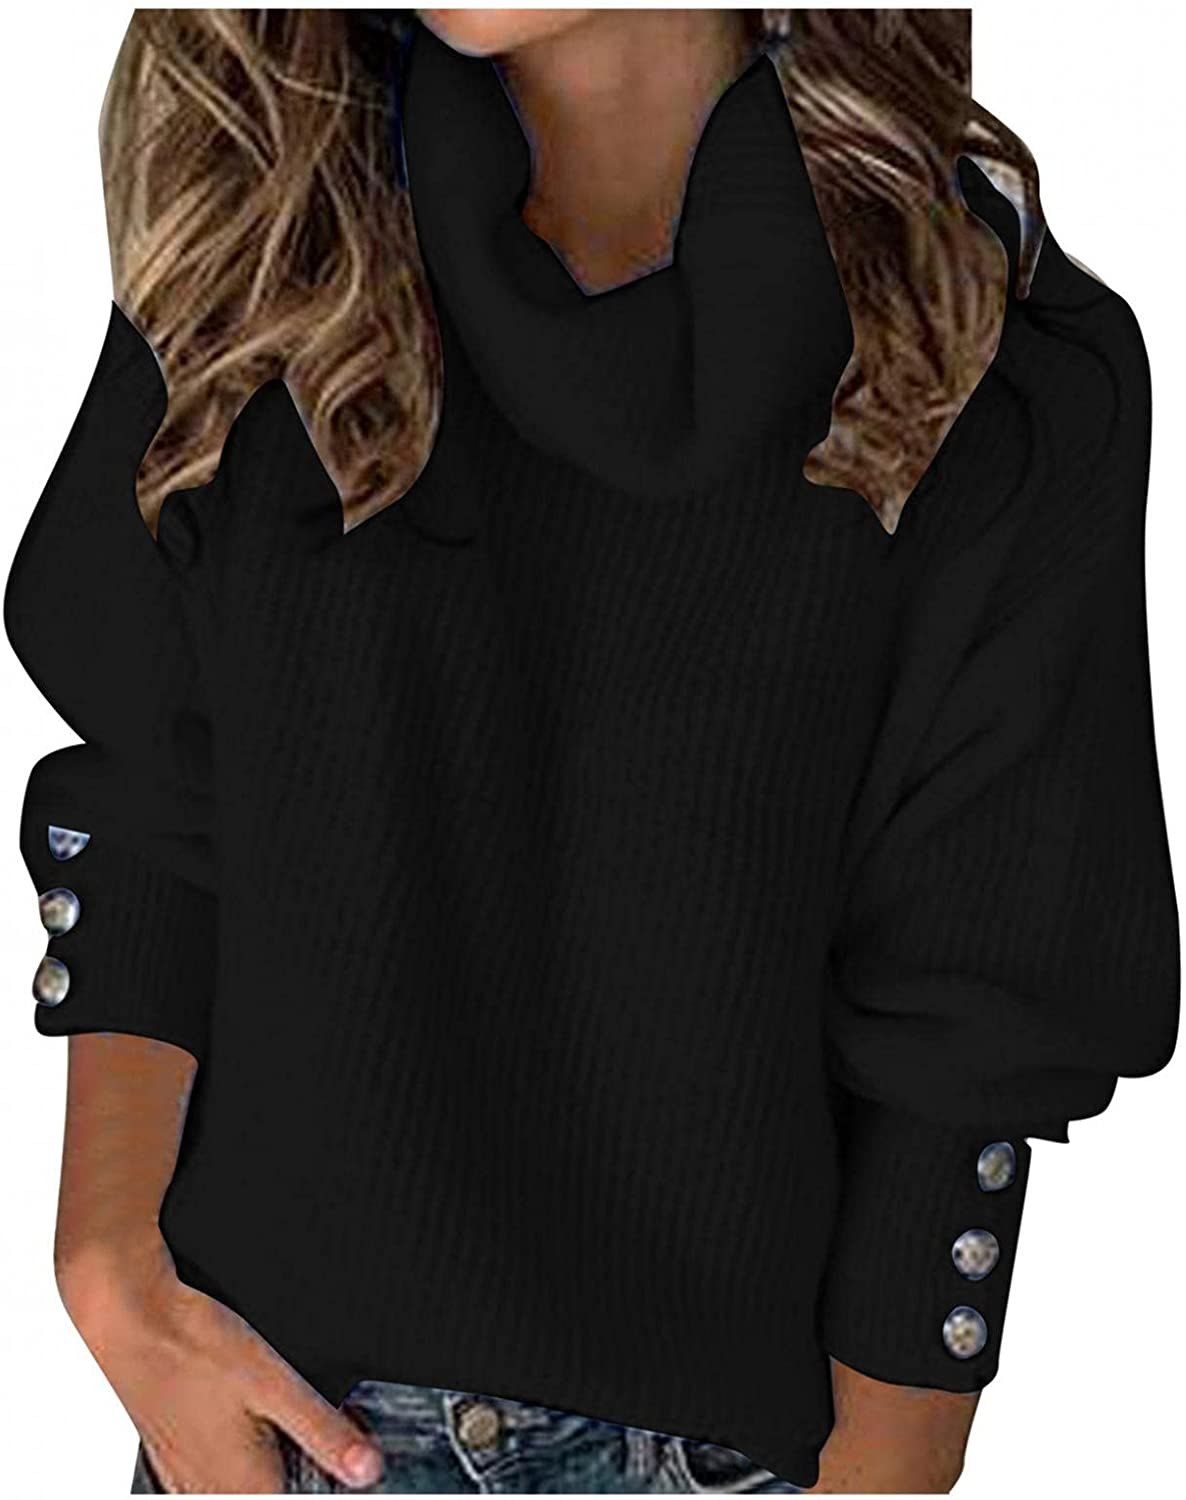 Gibobby Sweaters for Women Casual,Women's Long Sleeves Knitted Sweater Turtleneck Loose Pullover Soft Tops with Button